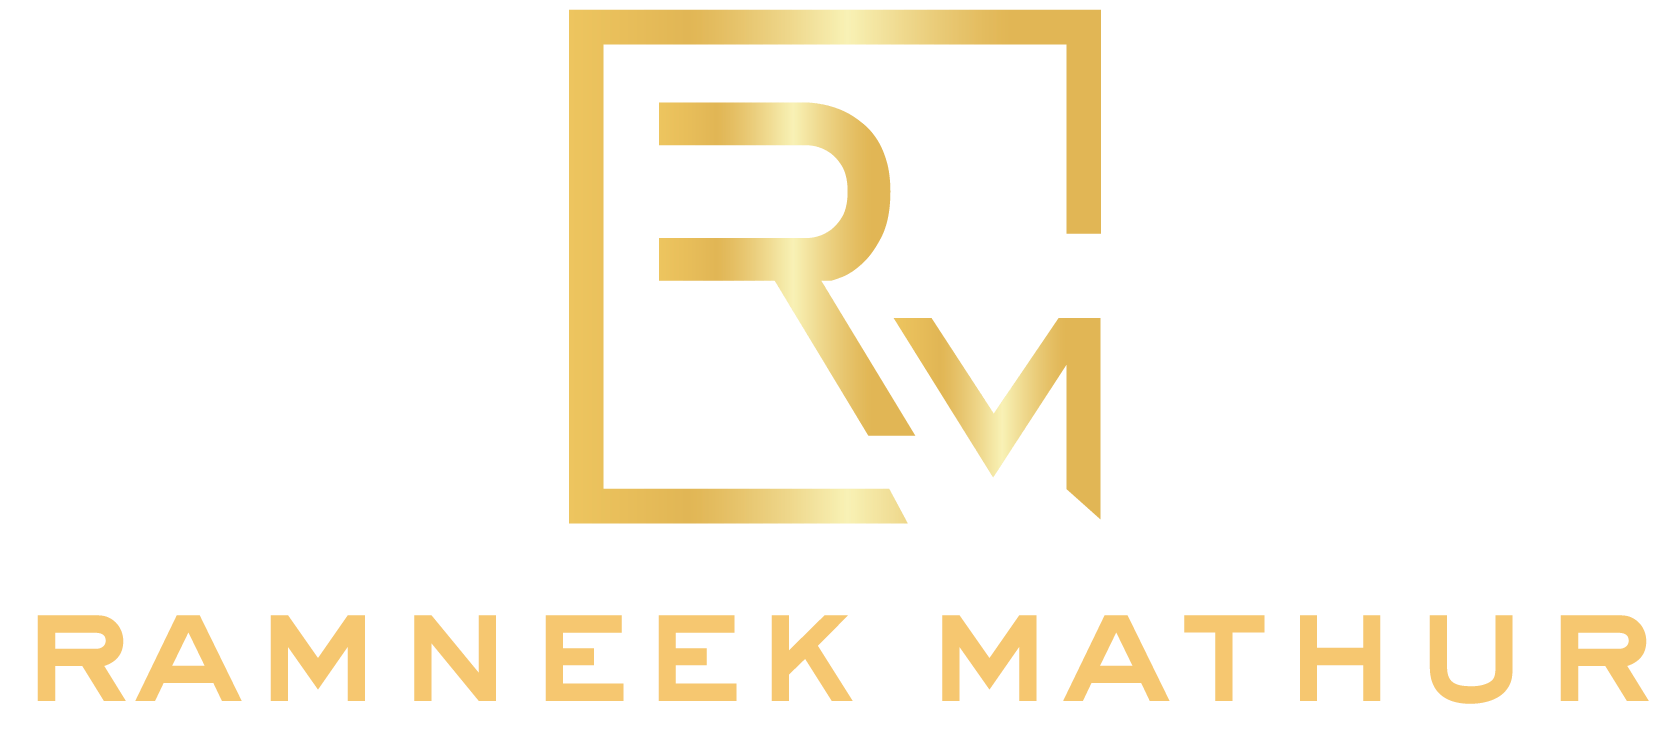 Ramneek Mathur – Investment Advisor, Real Estate Broker & Life Strategist